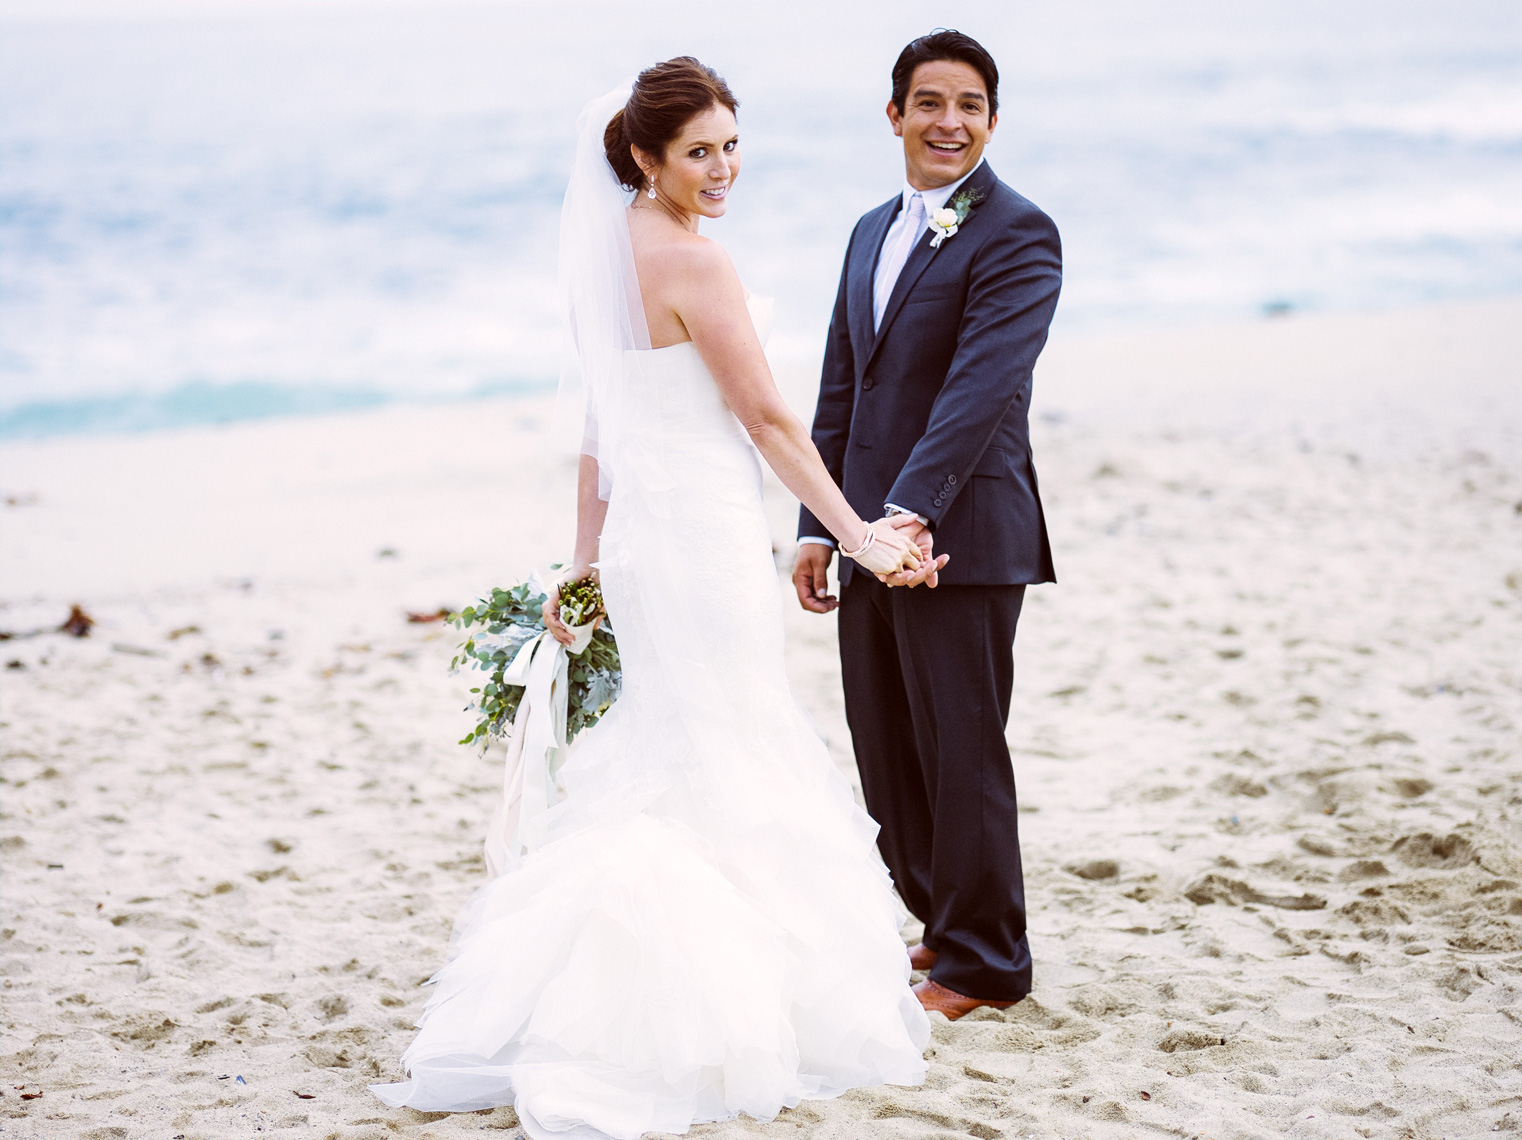 Bride and Groom smile after ceremony at Montage Laguna Beach, CA.